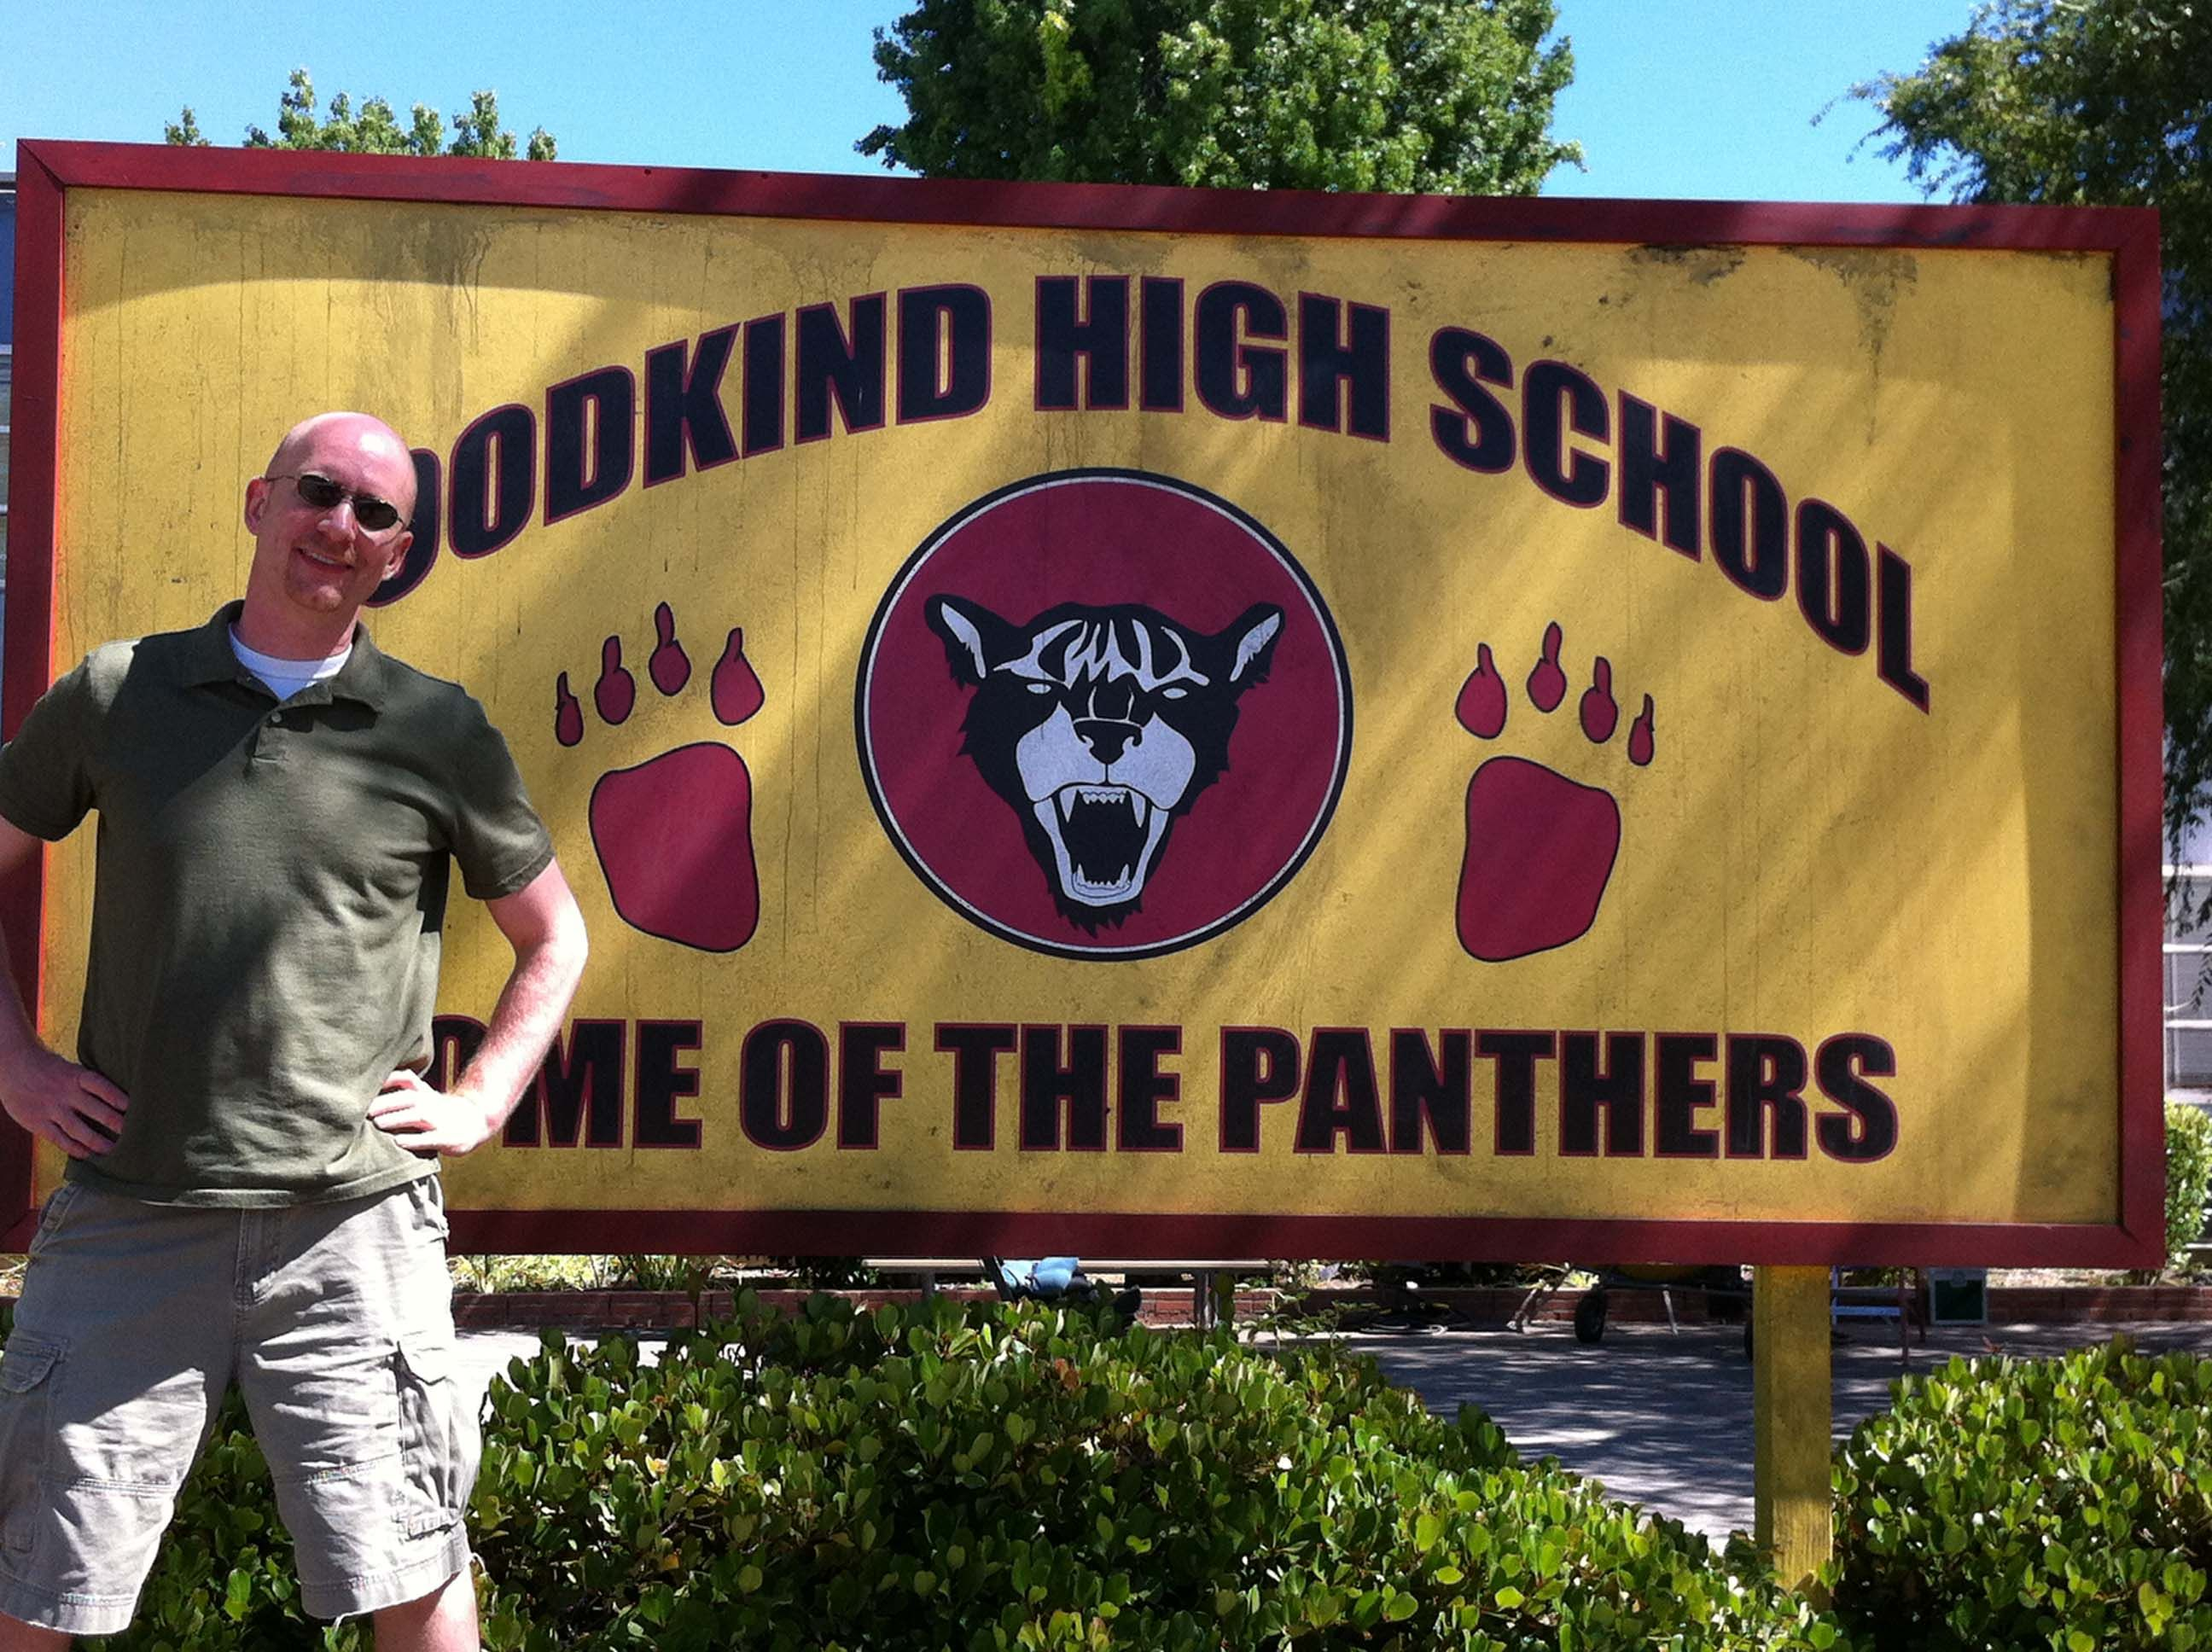 Here I Am Posing In Front Of The Robert G Goodkind High School